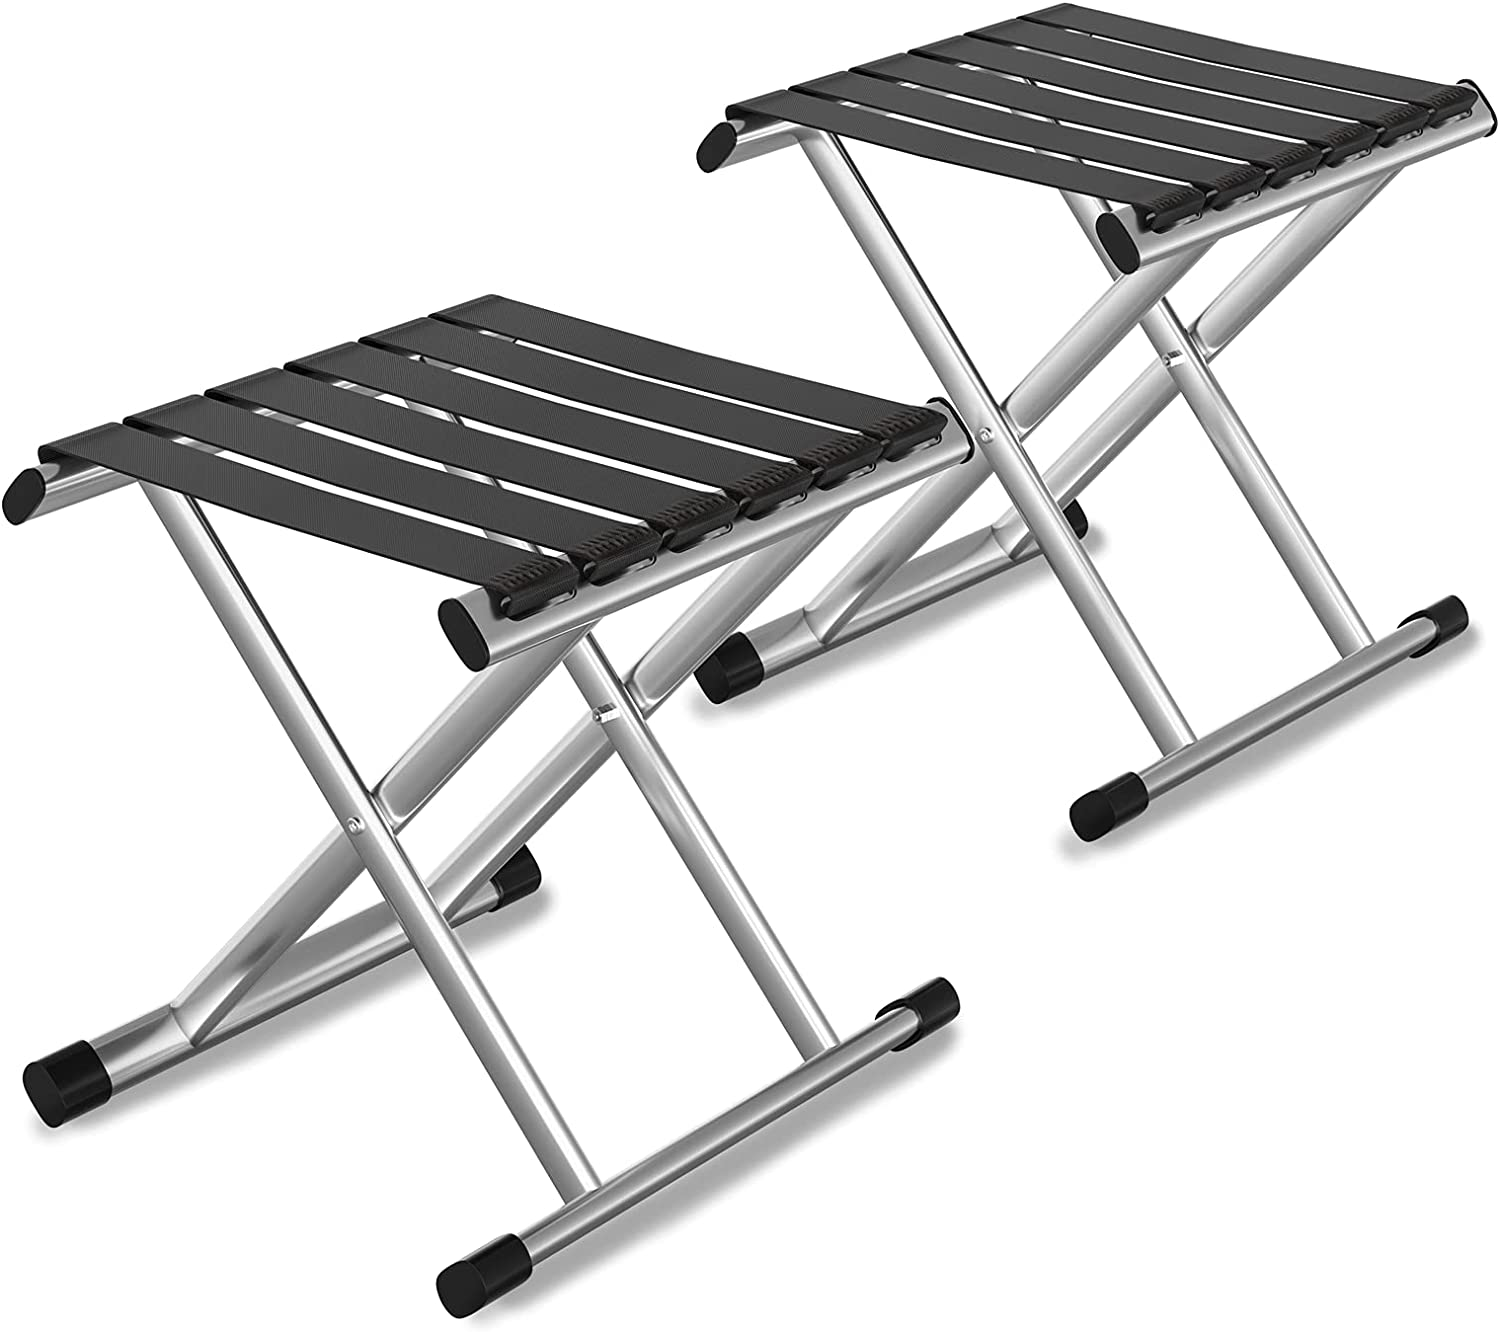 Folding Camping Stool - 2 Packs Outdoor Portable Chairs Lightweight and Compact, Collapsible Stool Seat for Adults Fishing Hiking and Walking